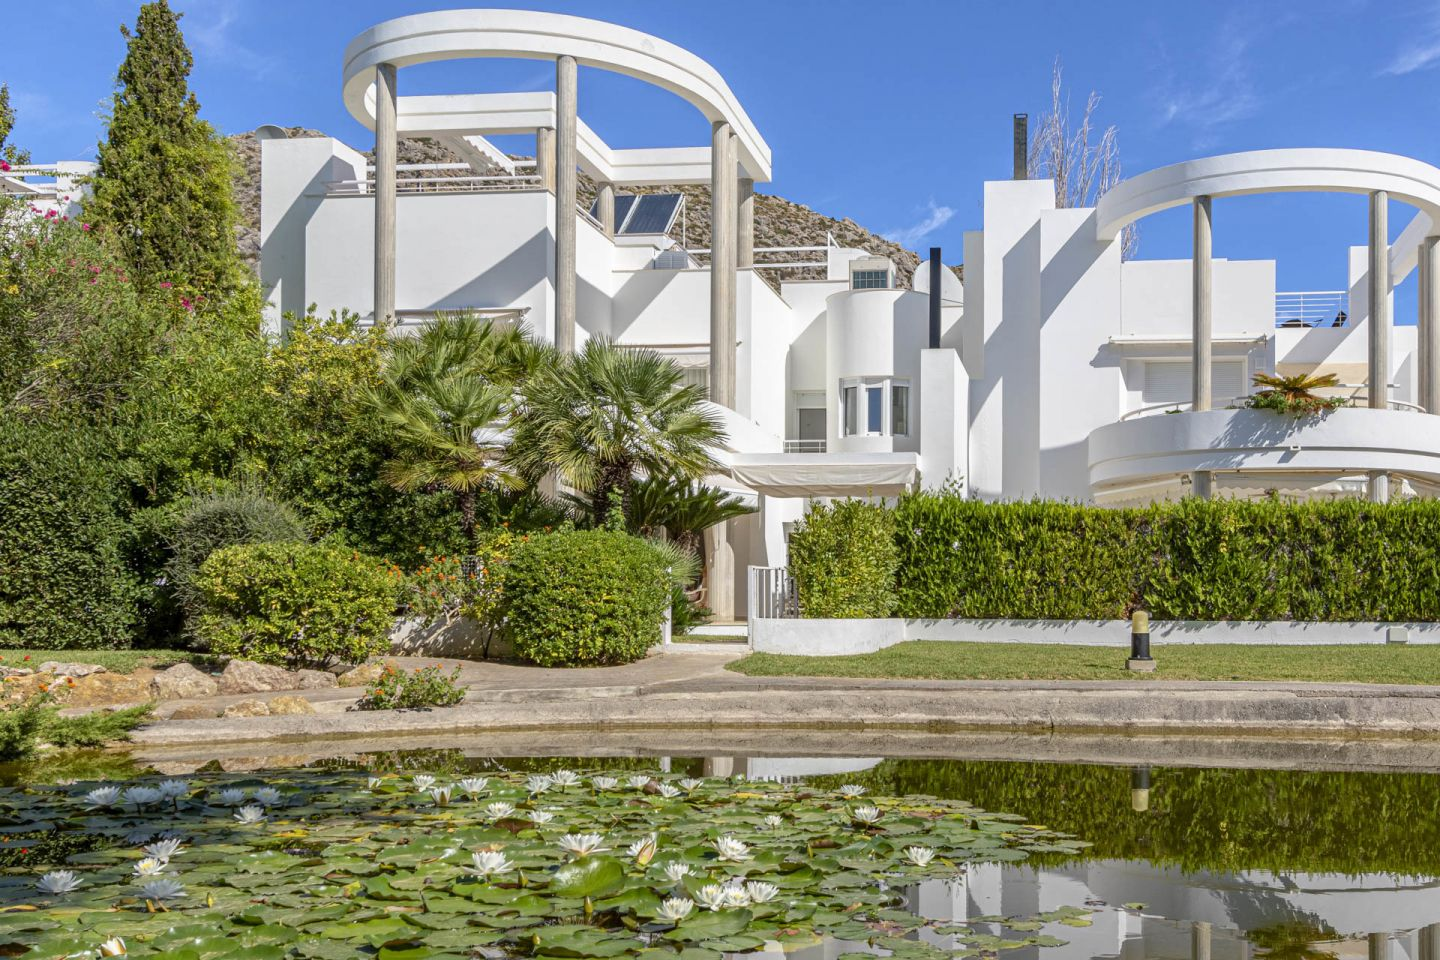 5 Bed Townhouse for sale in Puerto Pollensa 0